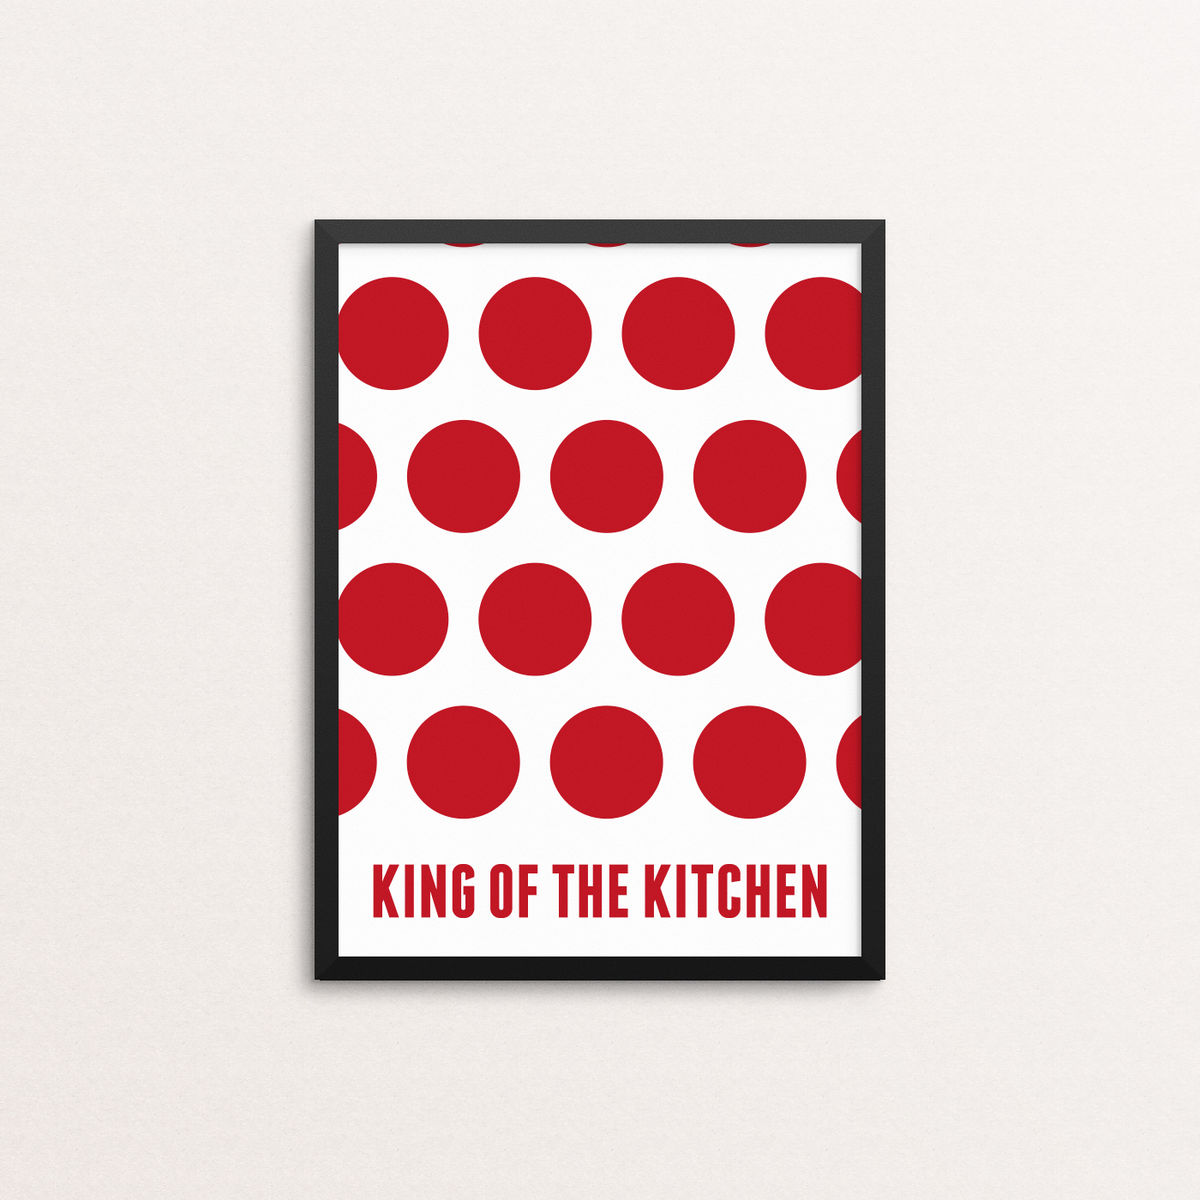 King of the Kitchen - Limited Edition Giclee Print - product image